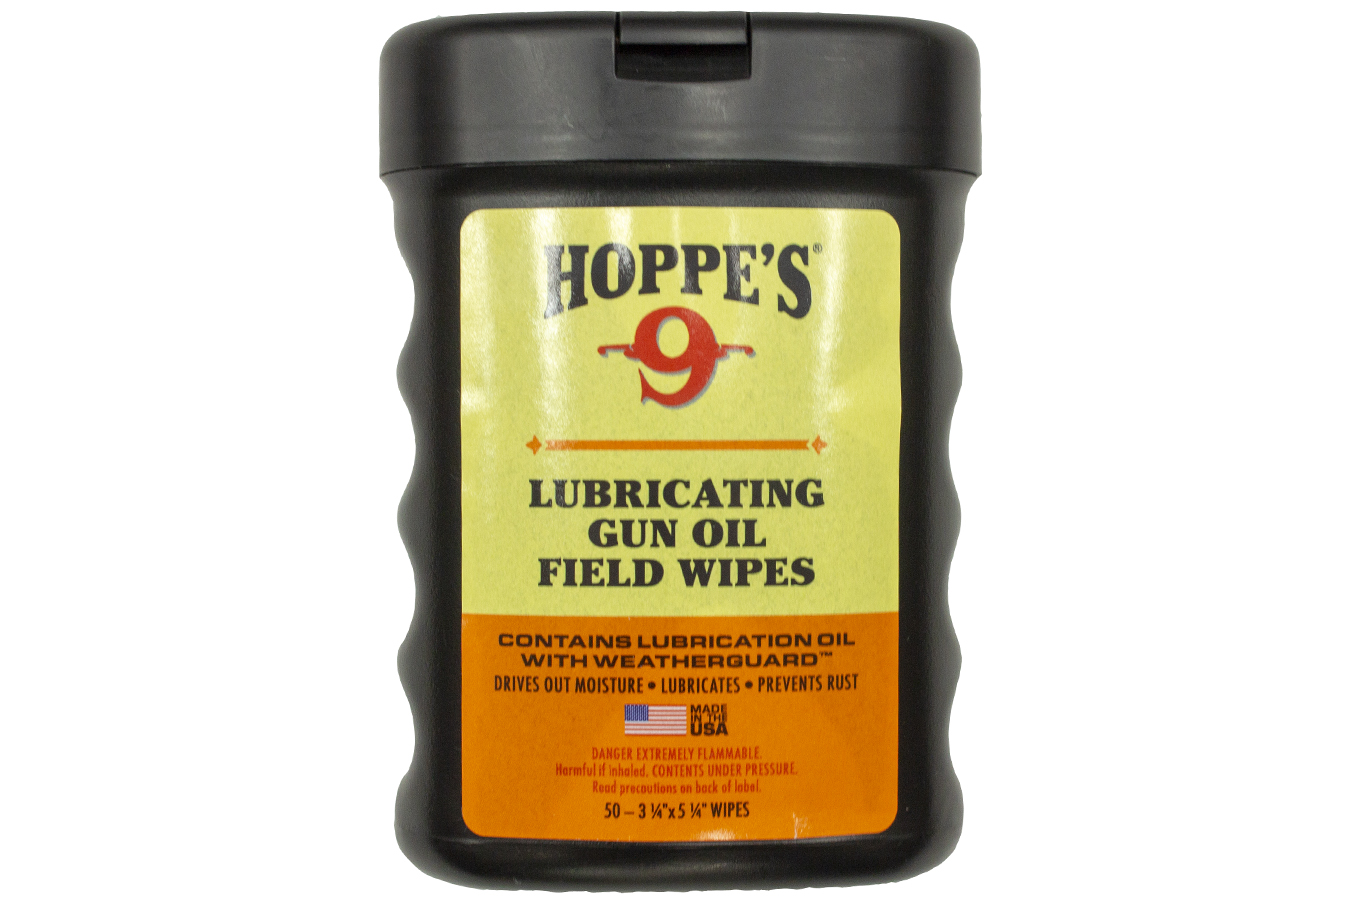 64908e50a32 Email A Friend about  HOPPES LUBRICATING GUN OIL FIELD WIPES ...